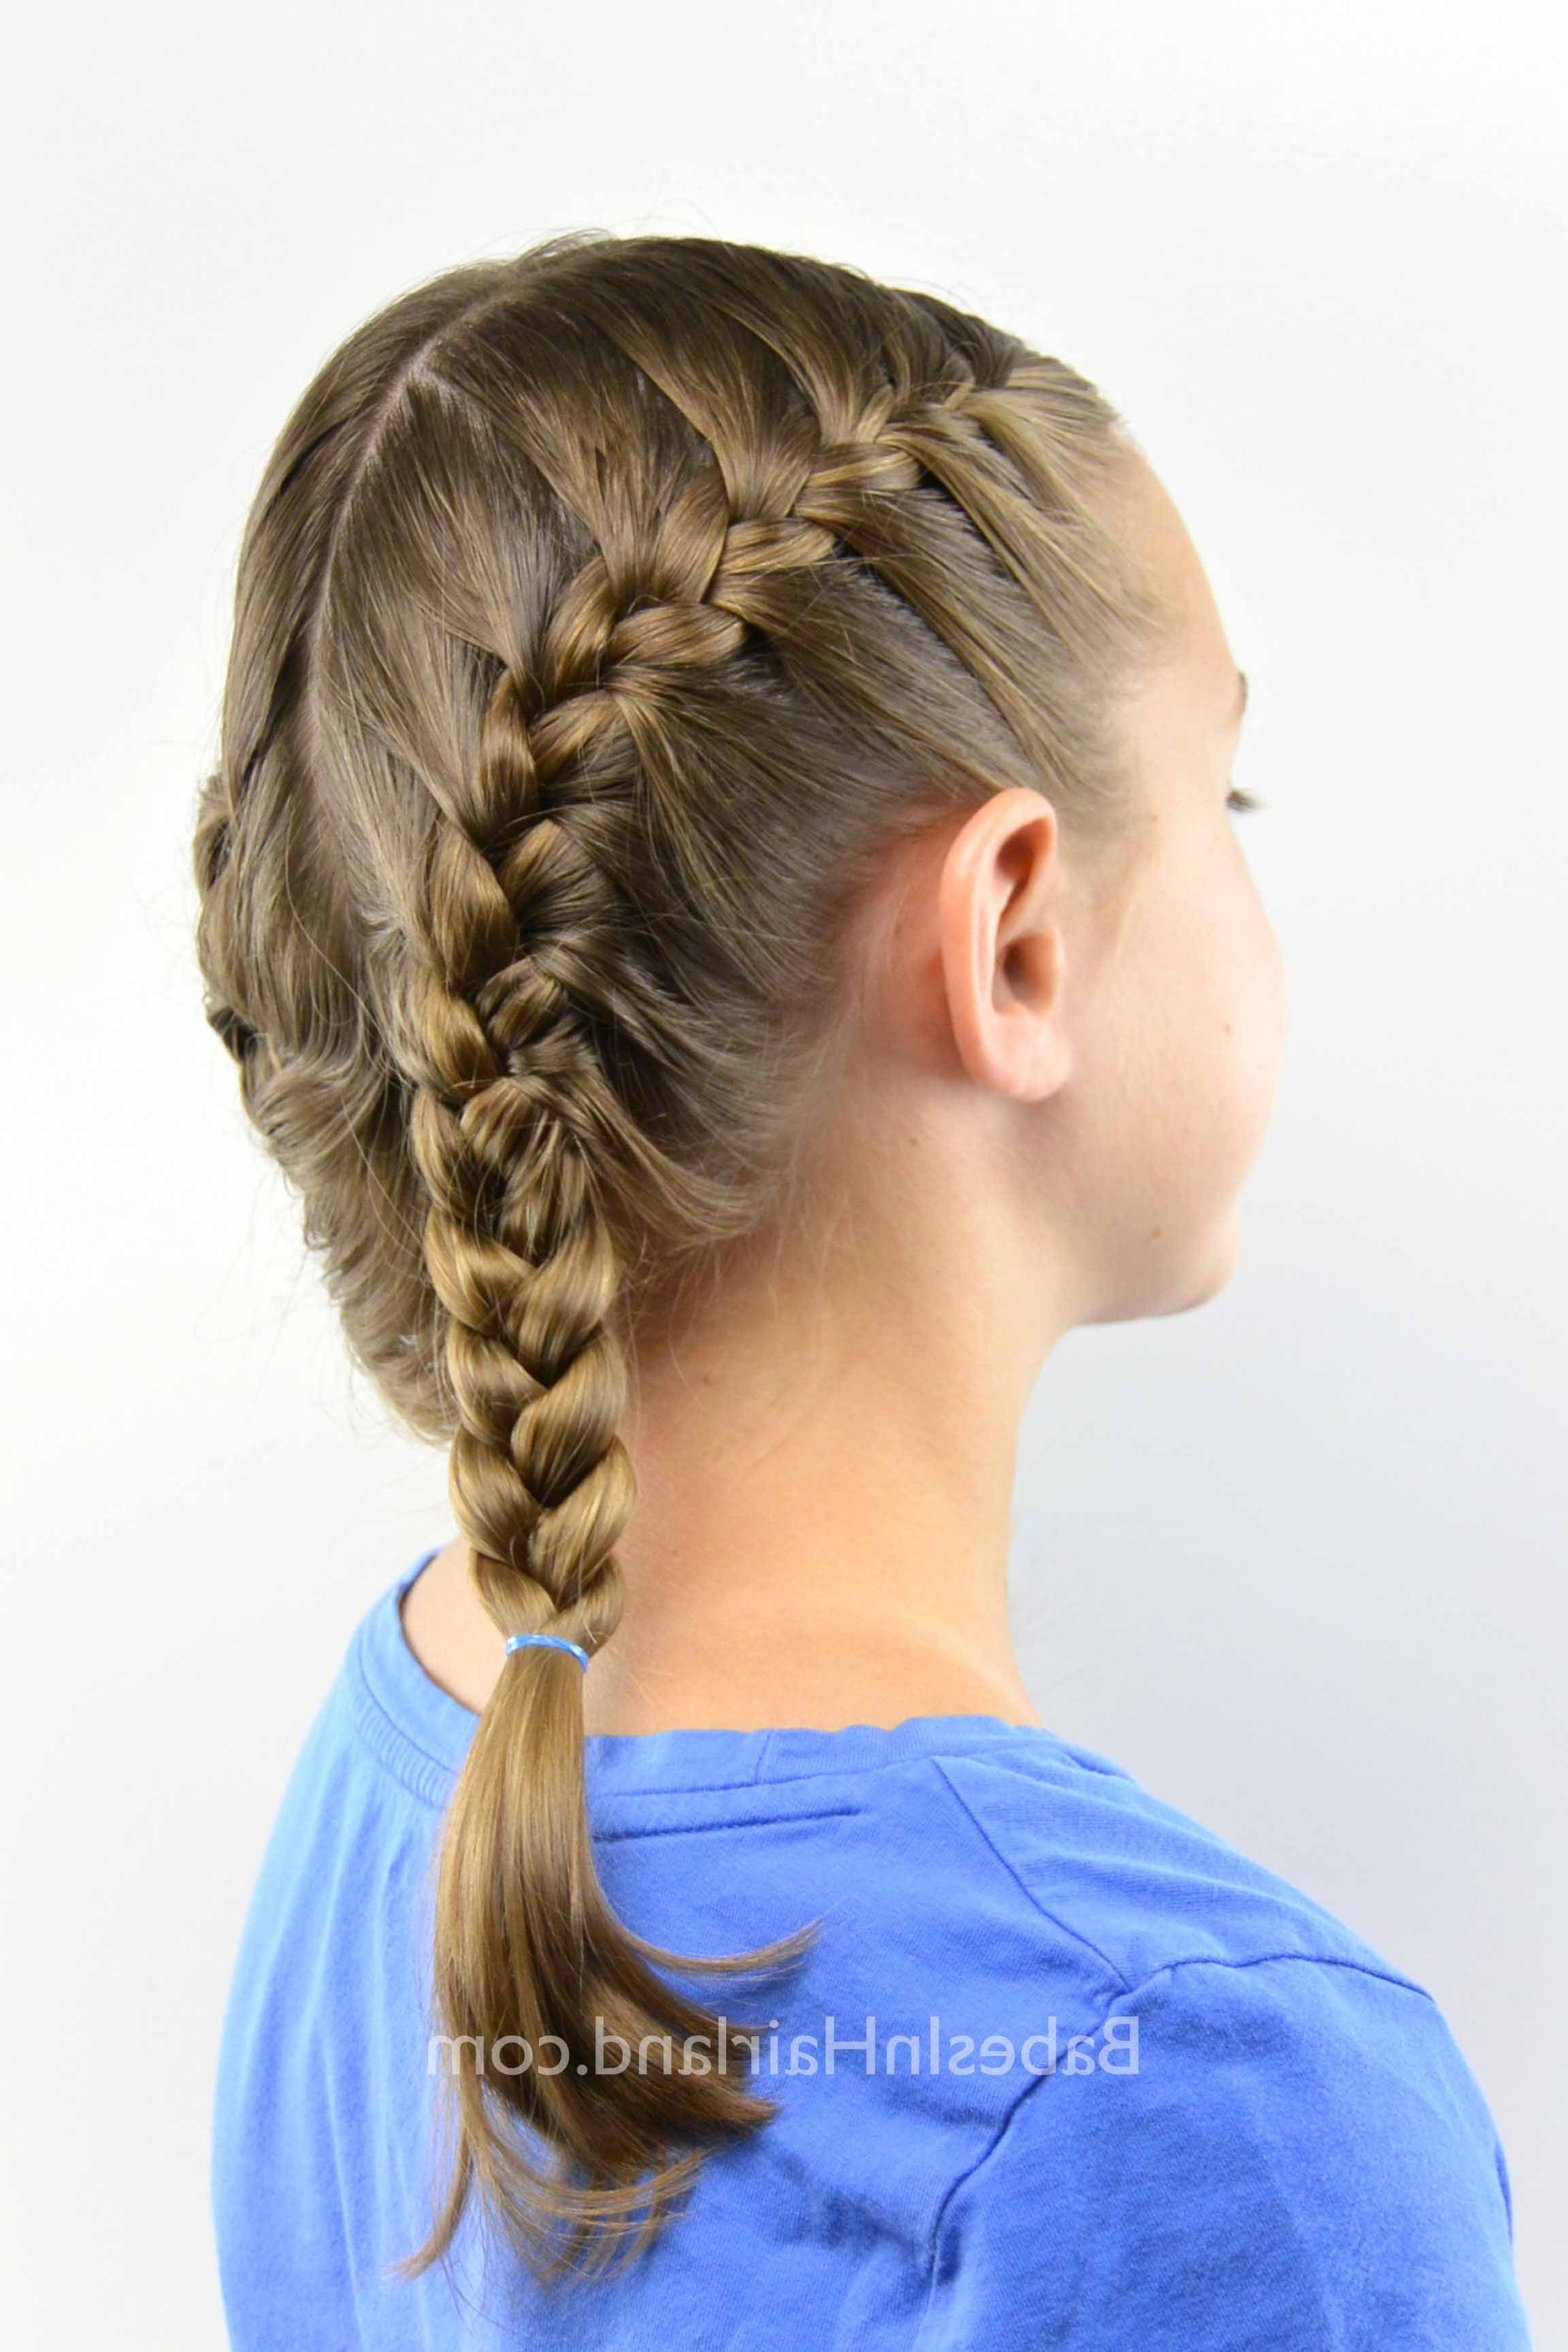 Widely Used Loose Hair With Double French Braids For How To Get A Tight French Braid – Babes In Hairland (View 15 of 15)